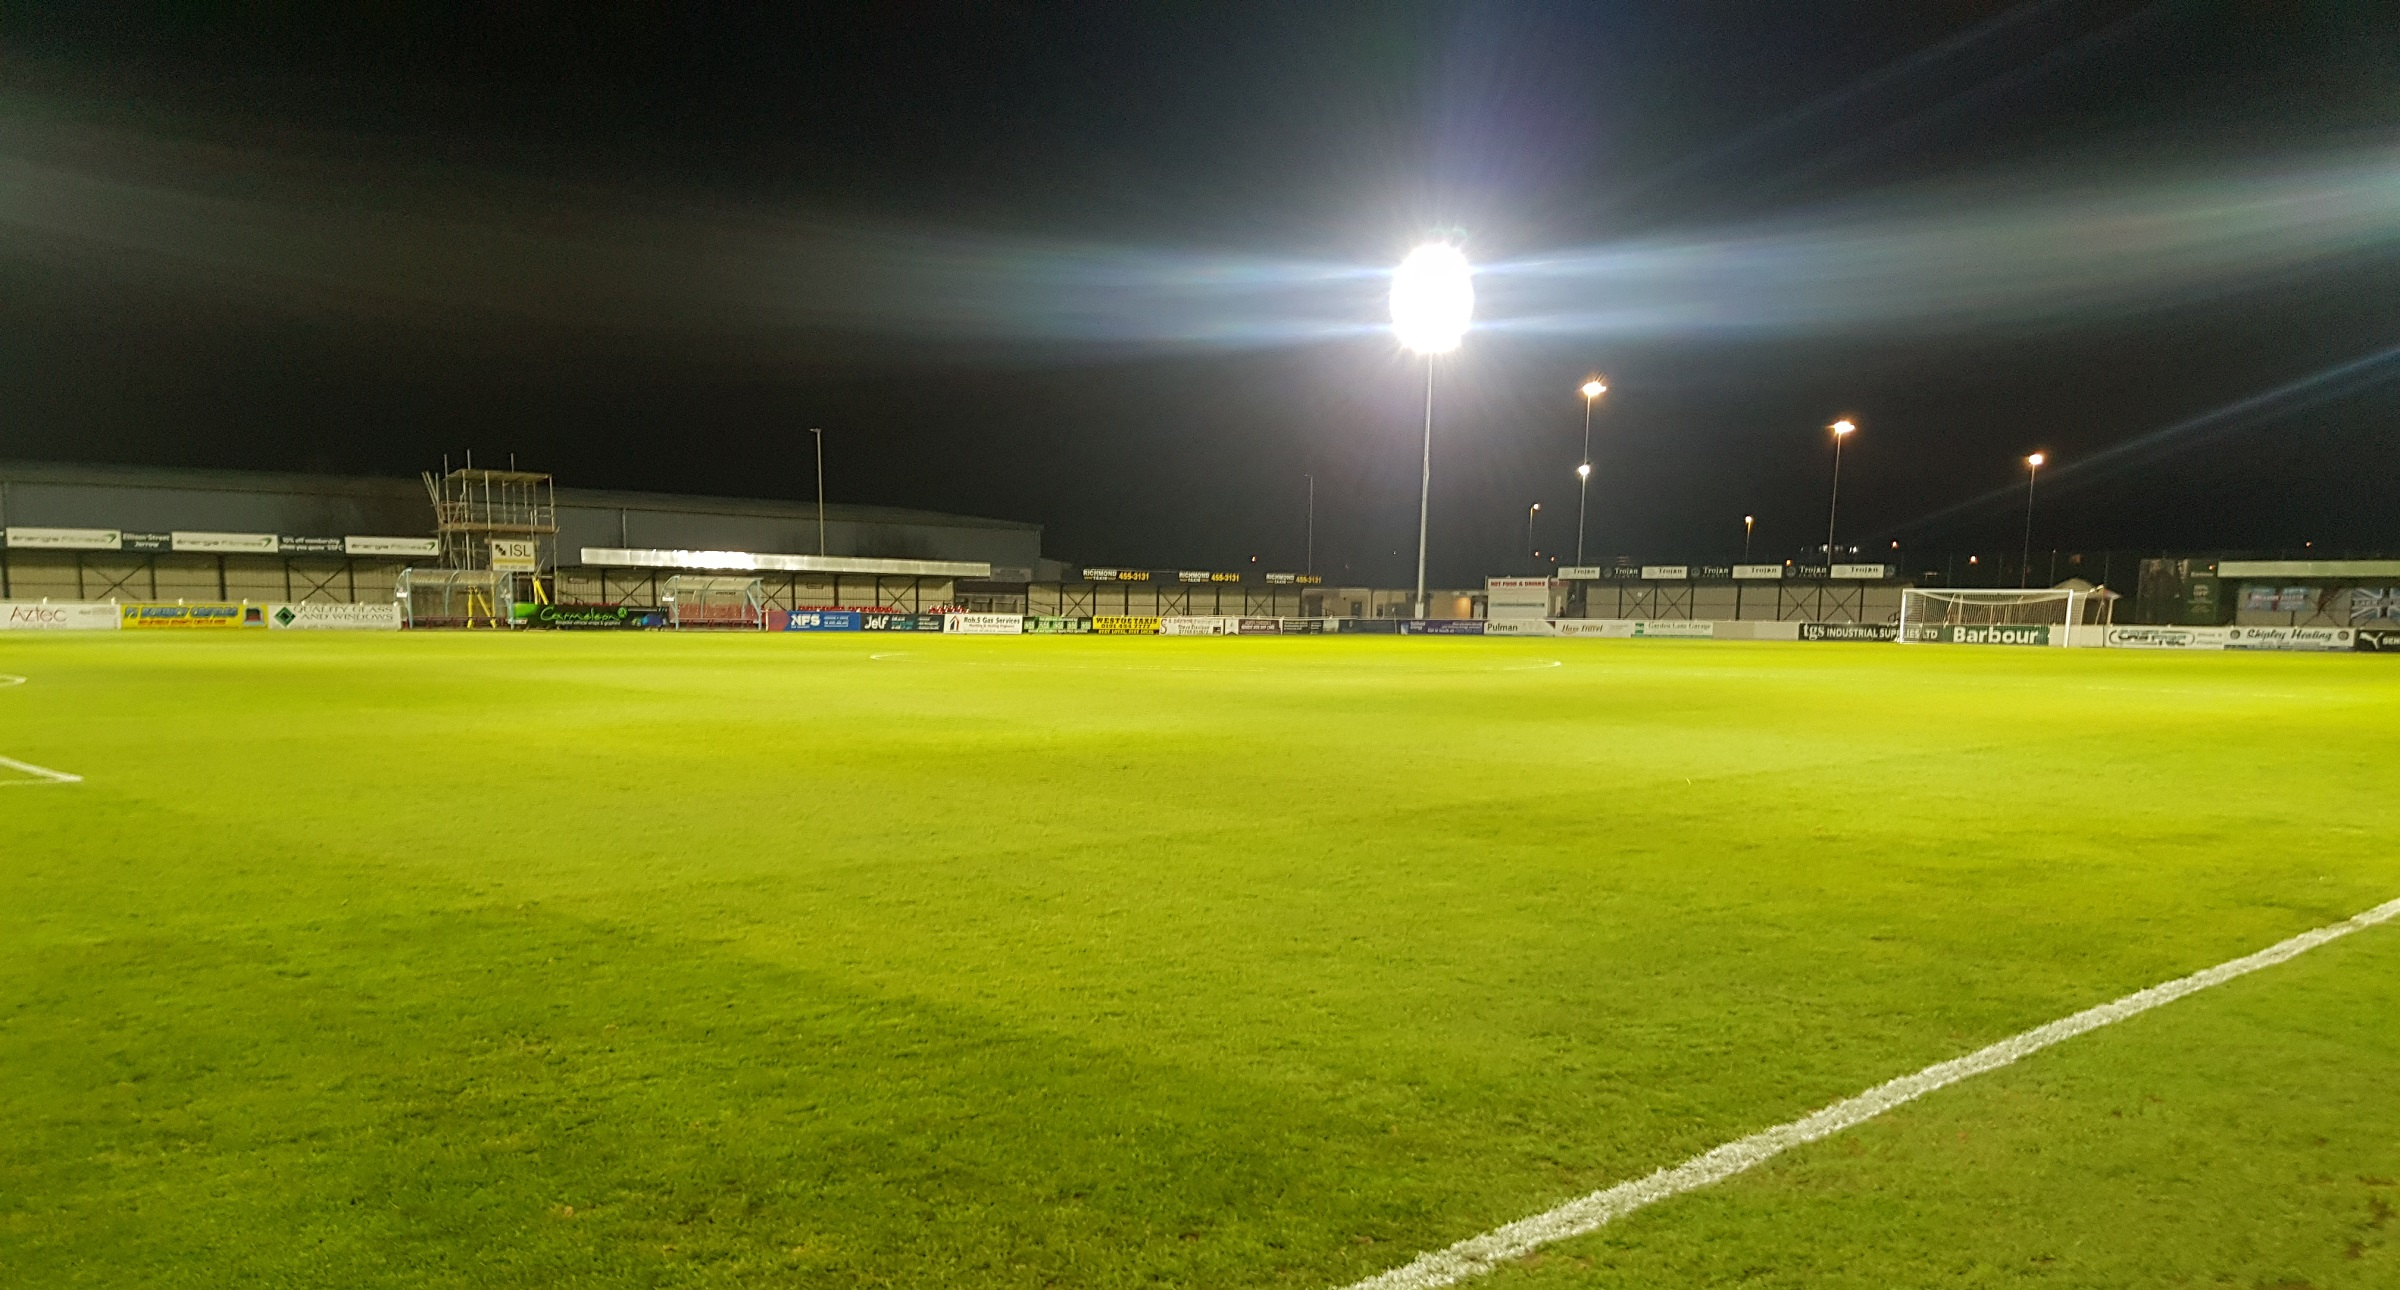 Billingham tie postponed and rearranged for Wednesday at Mariners Park